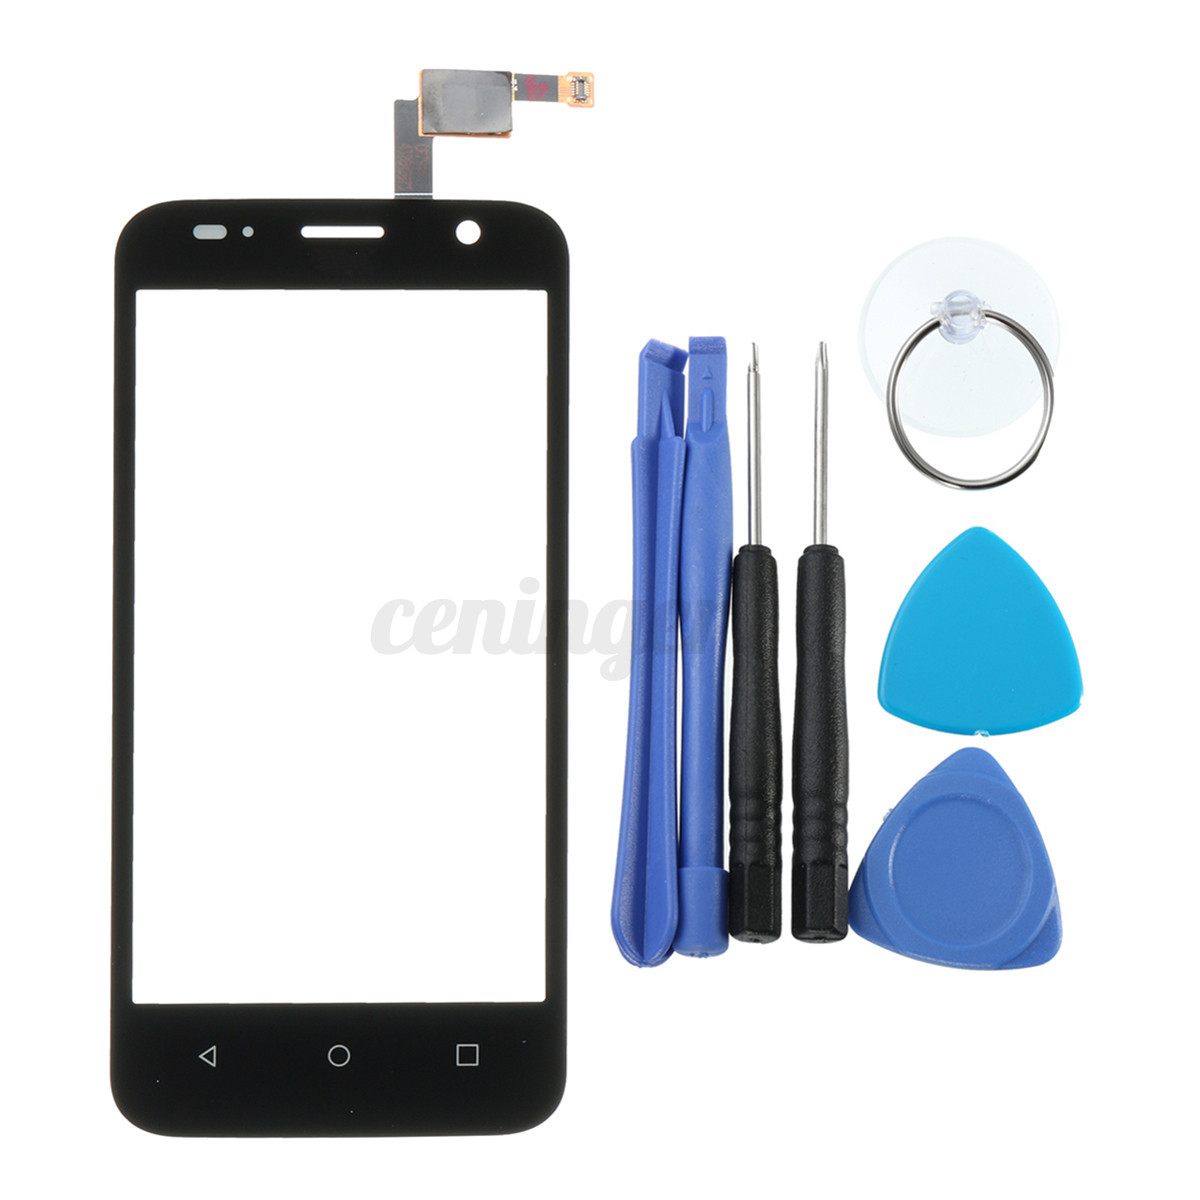 zte maven z812 screen replacement purchased and used